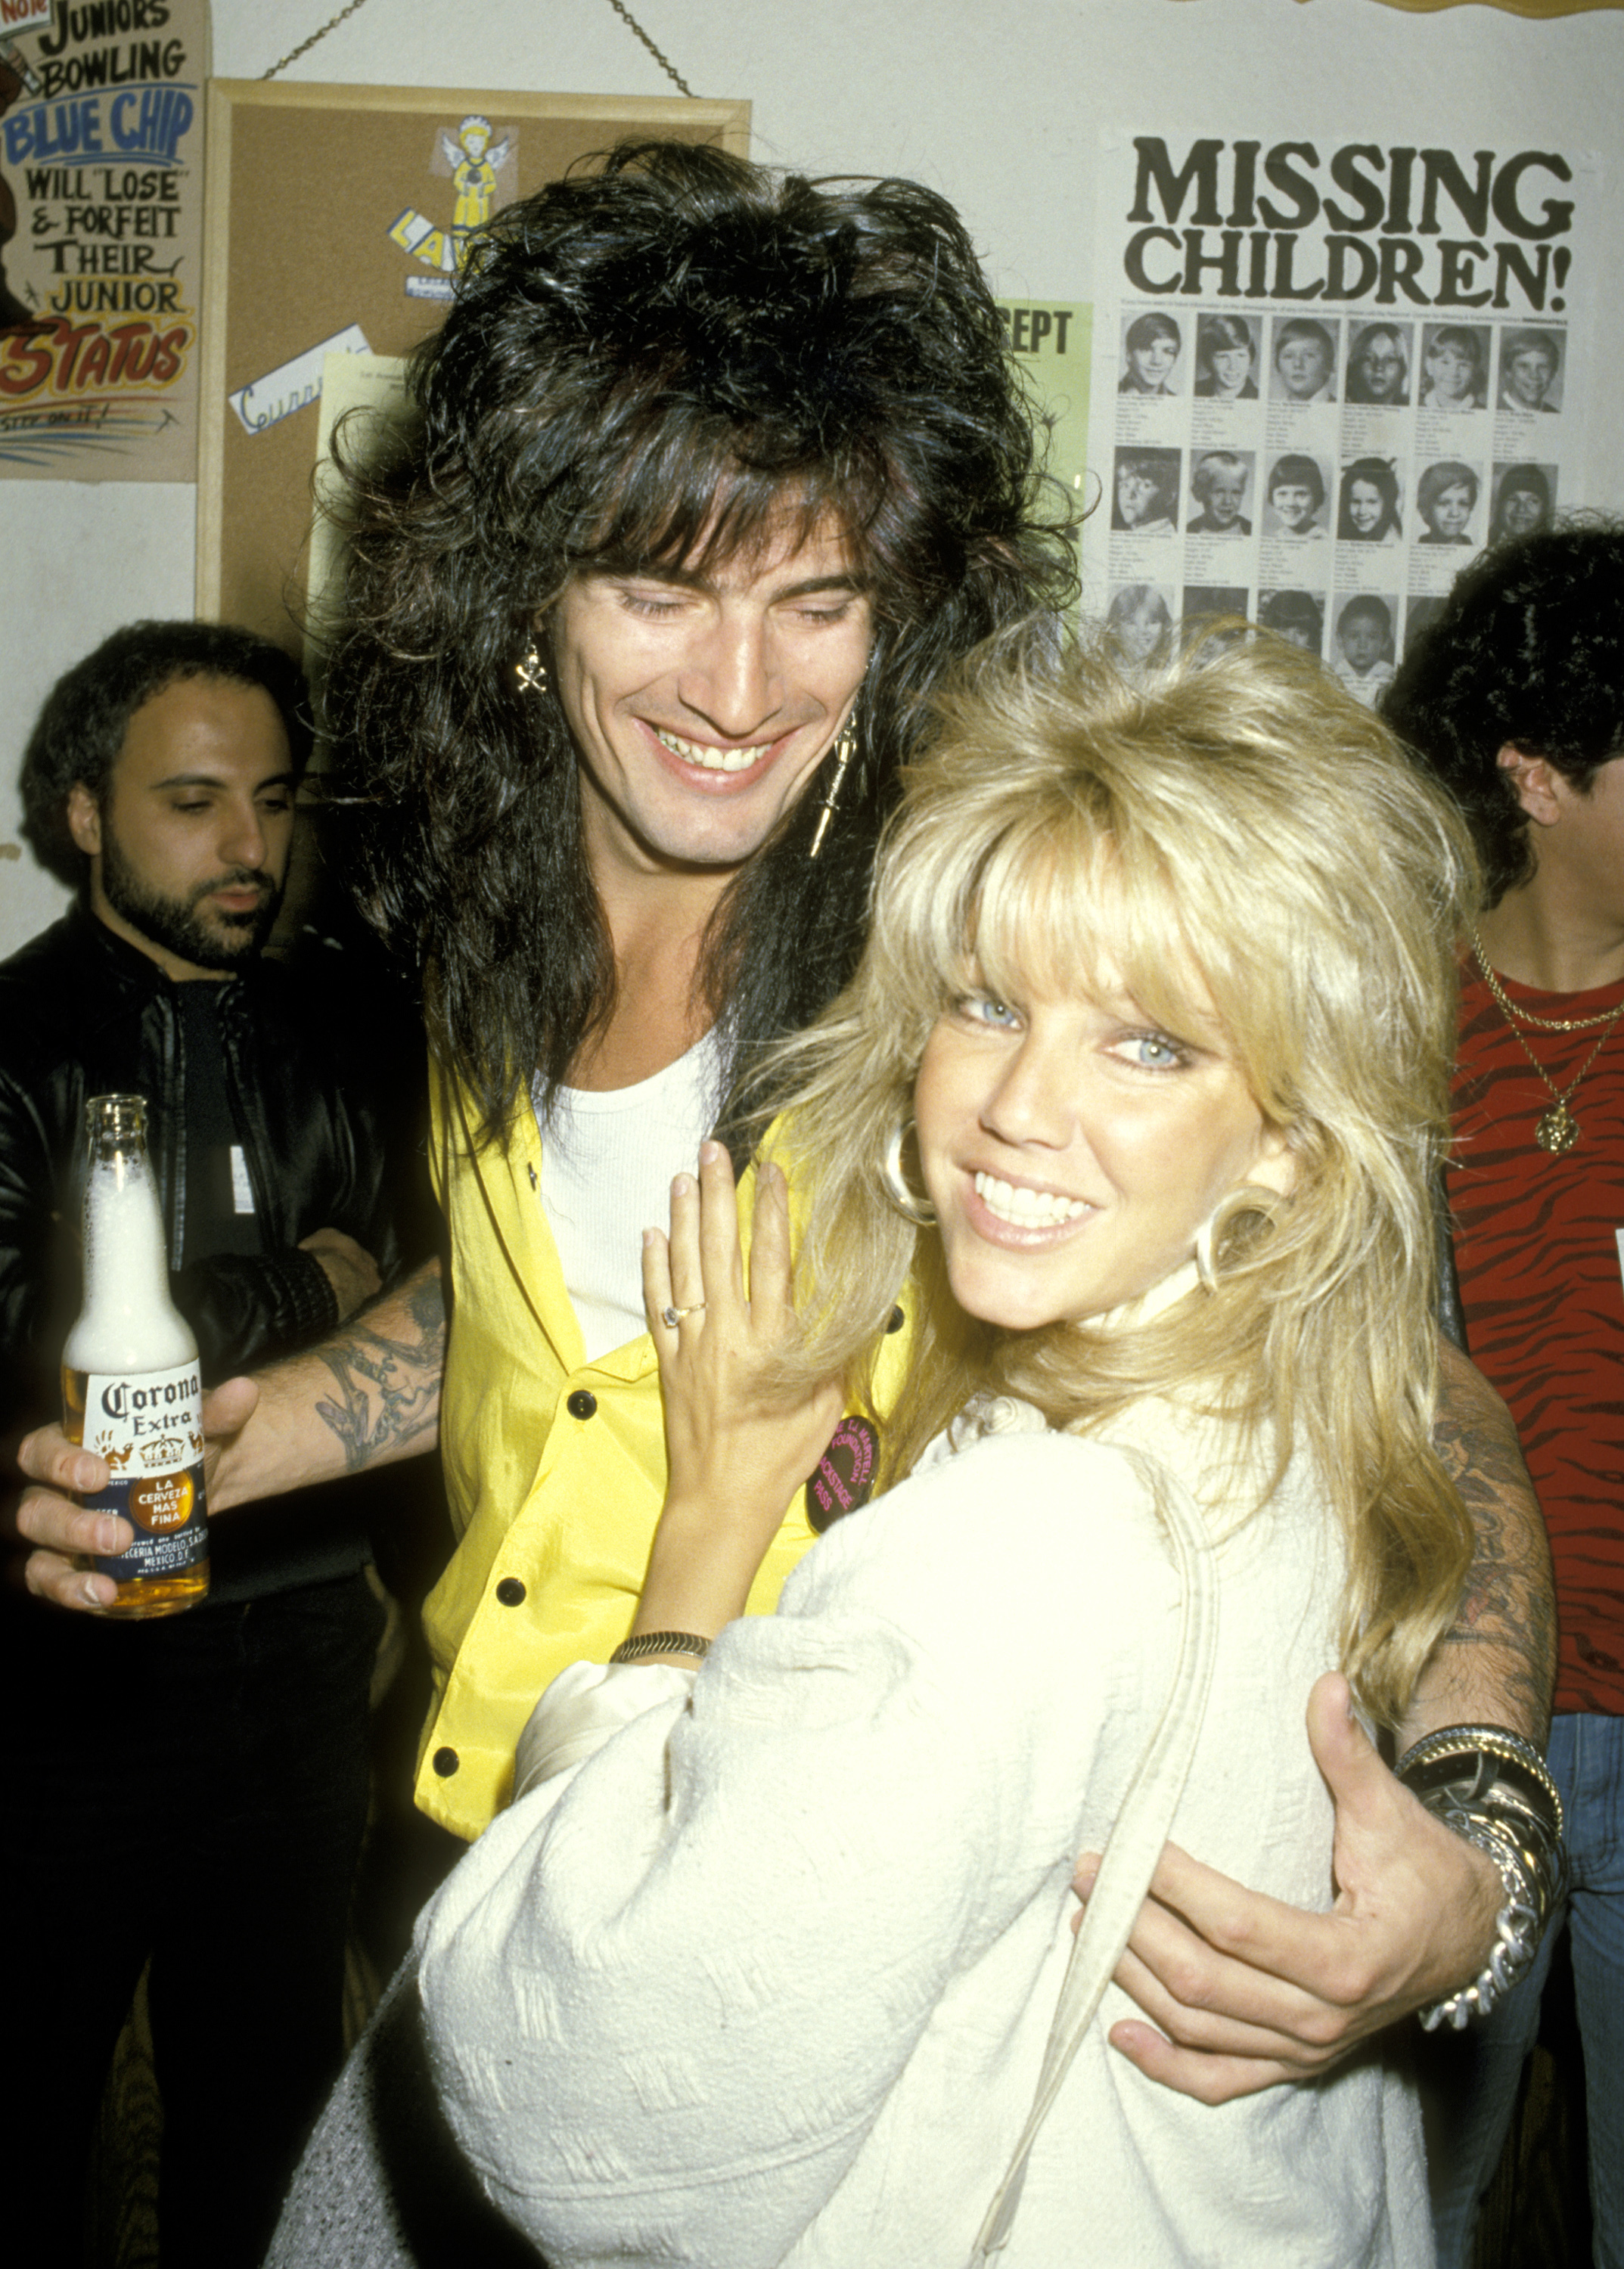 Tommy Lee And Heather Locklear Wedding Photos : tommy, heather, locklear, wedding, photos, Heather, Locklear,, Married, Divorce, Tommy